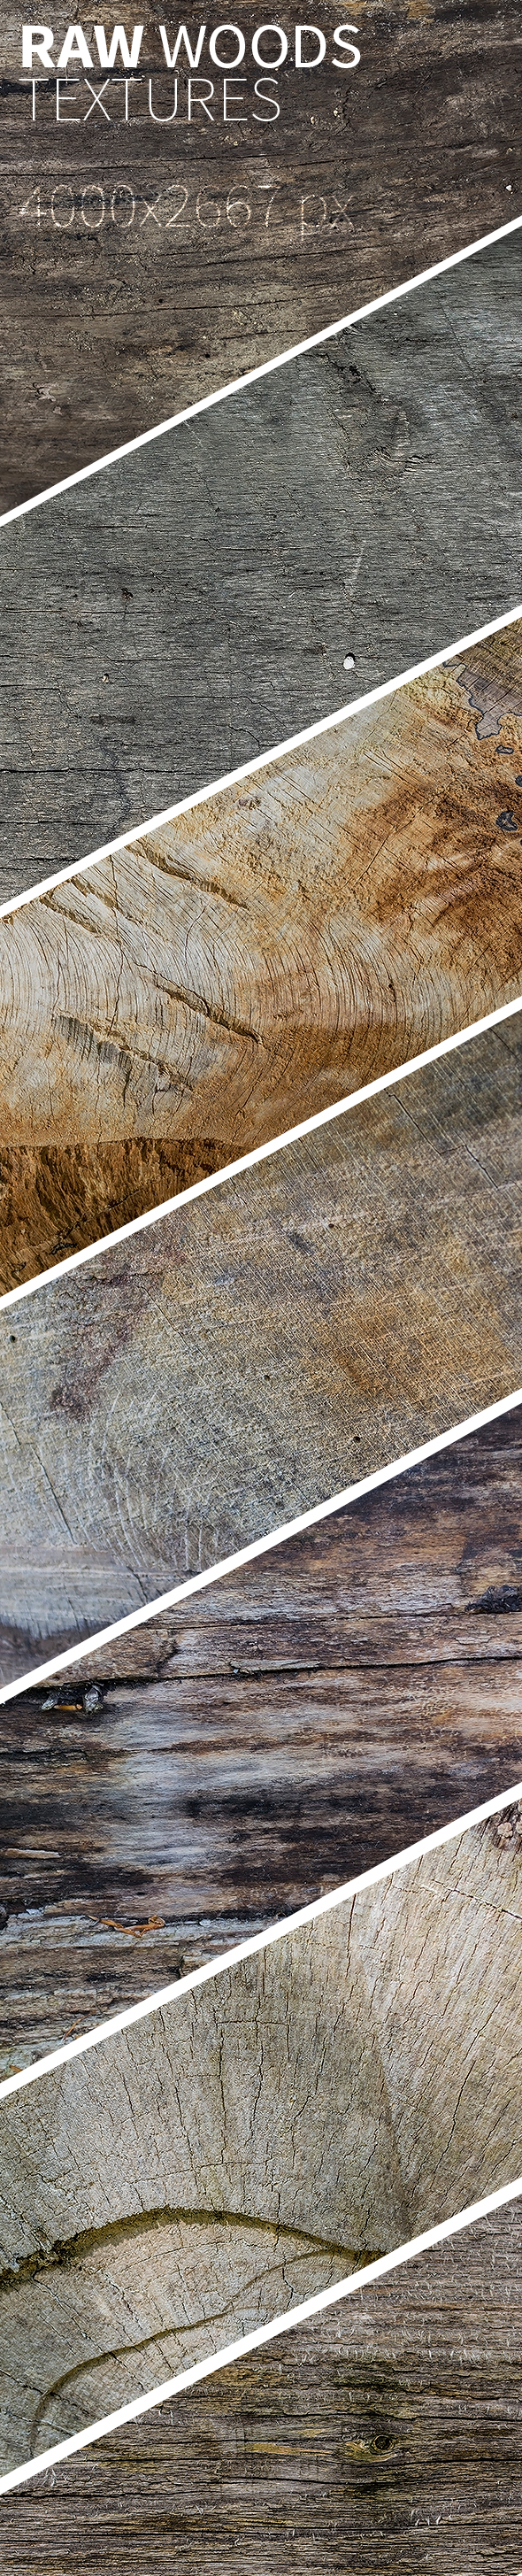 raw wood textures